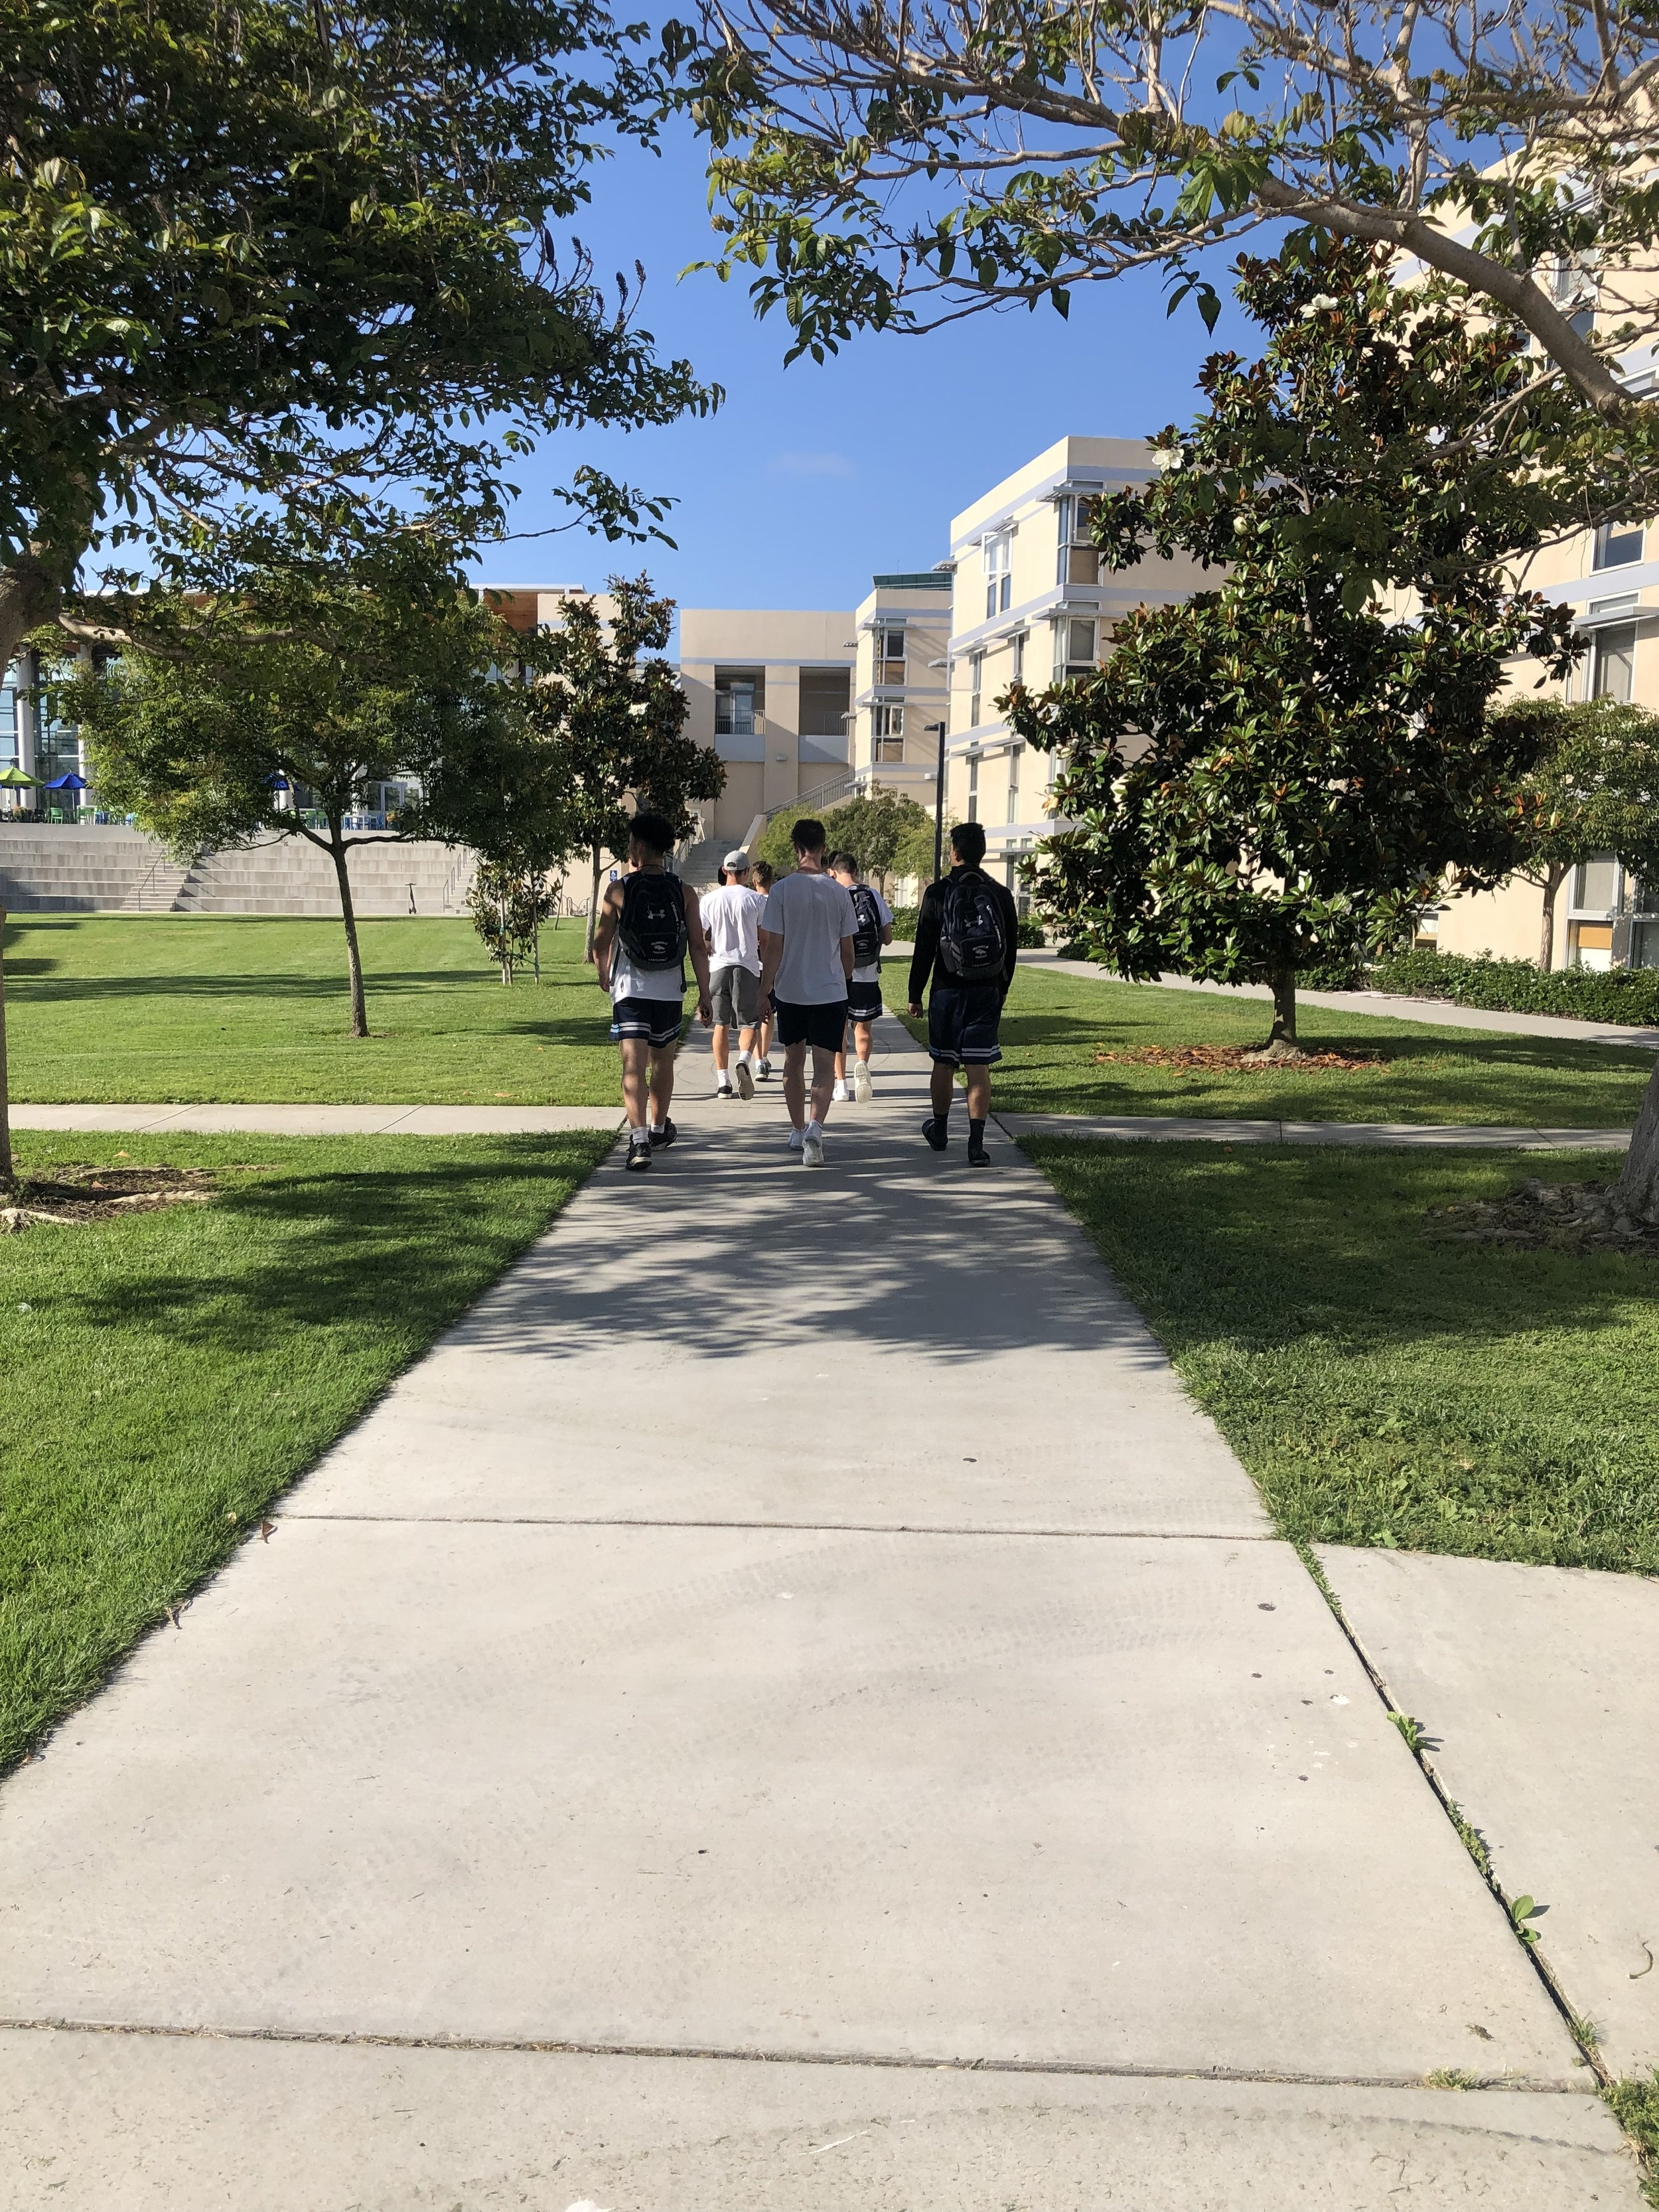 SAT: Walking to lunch on UCSD campus